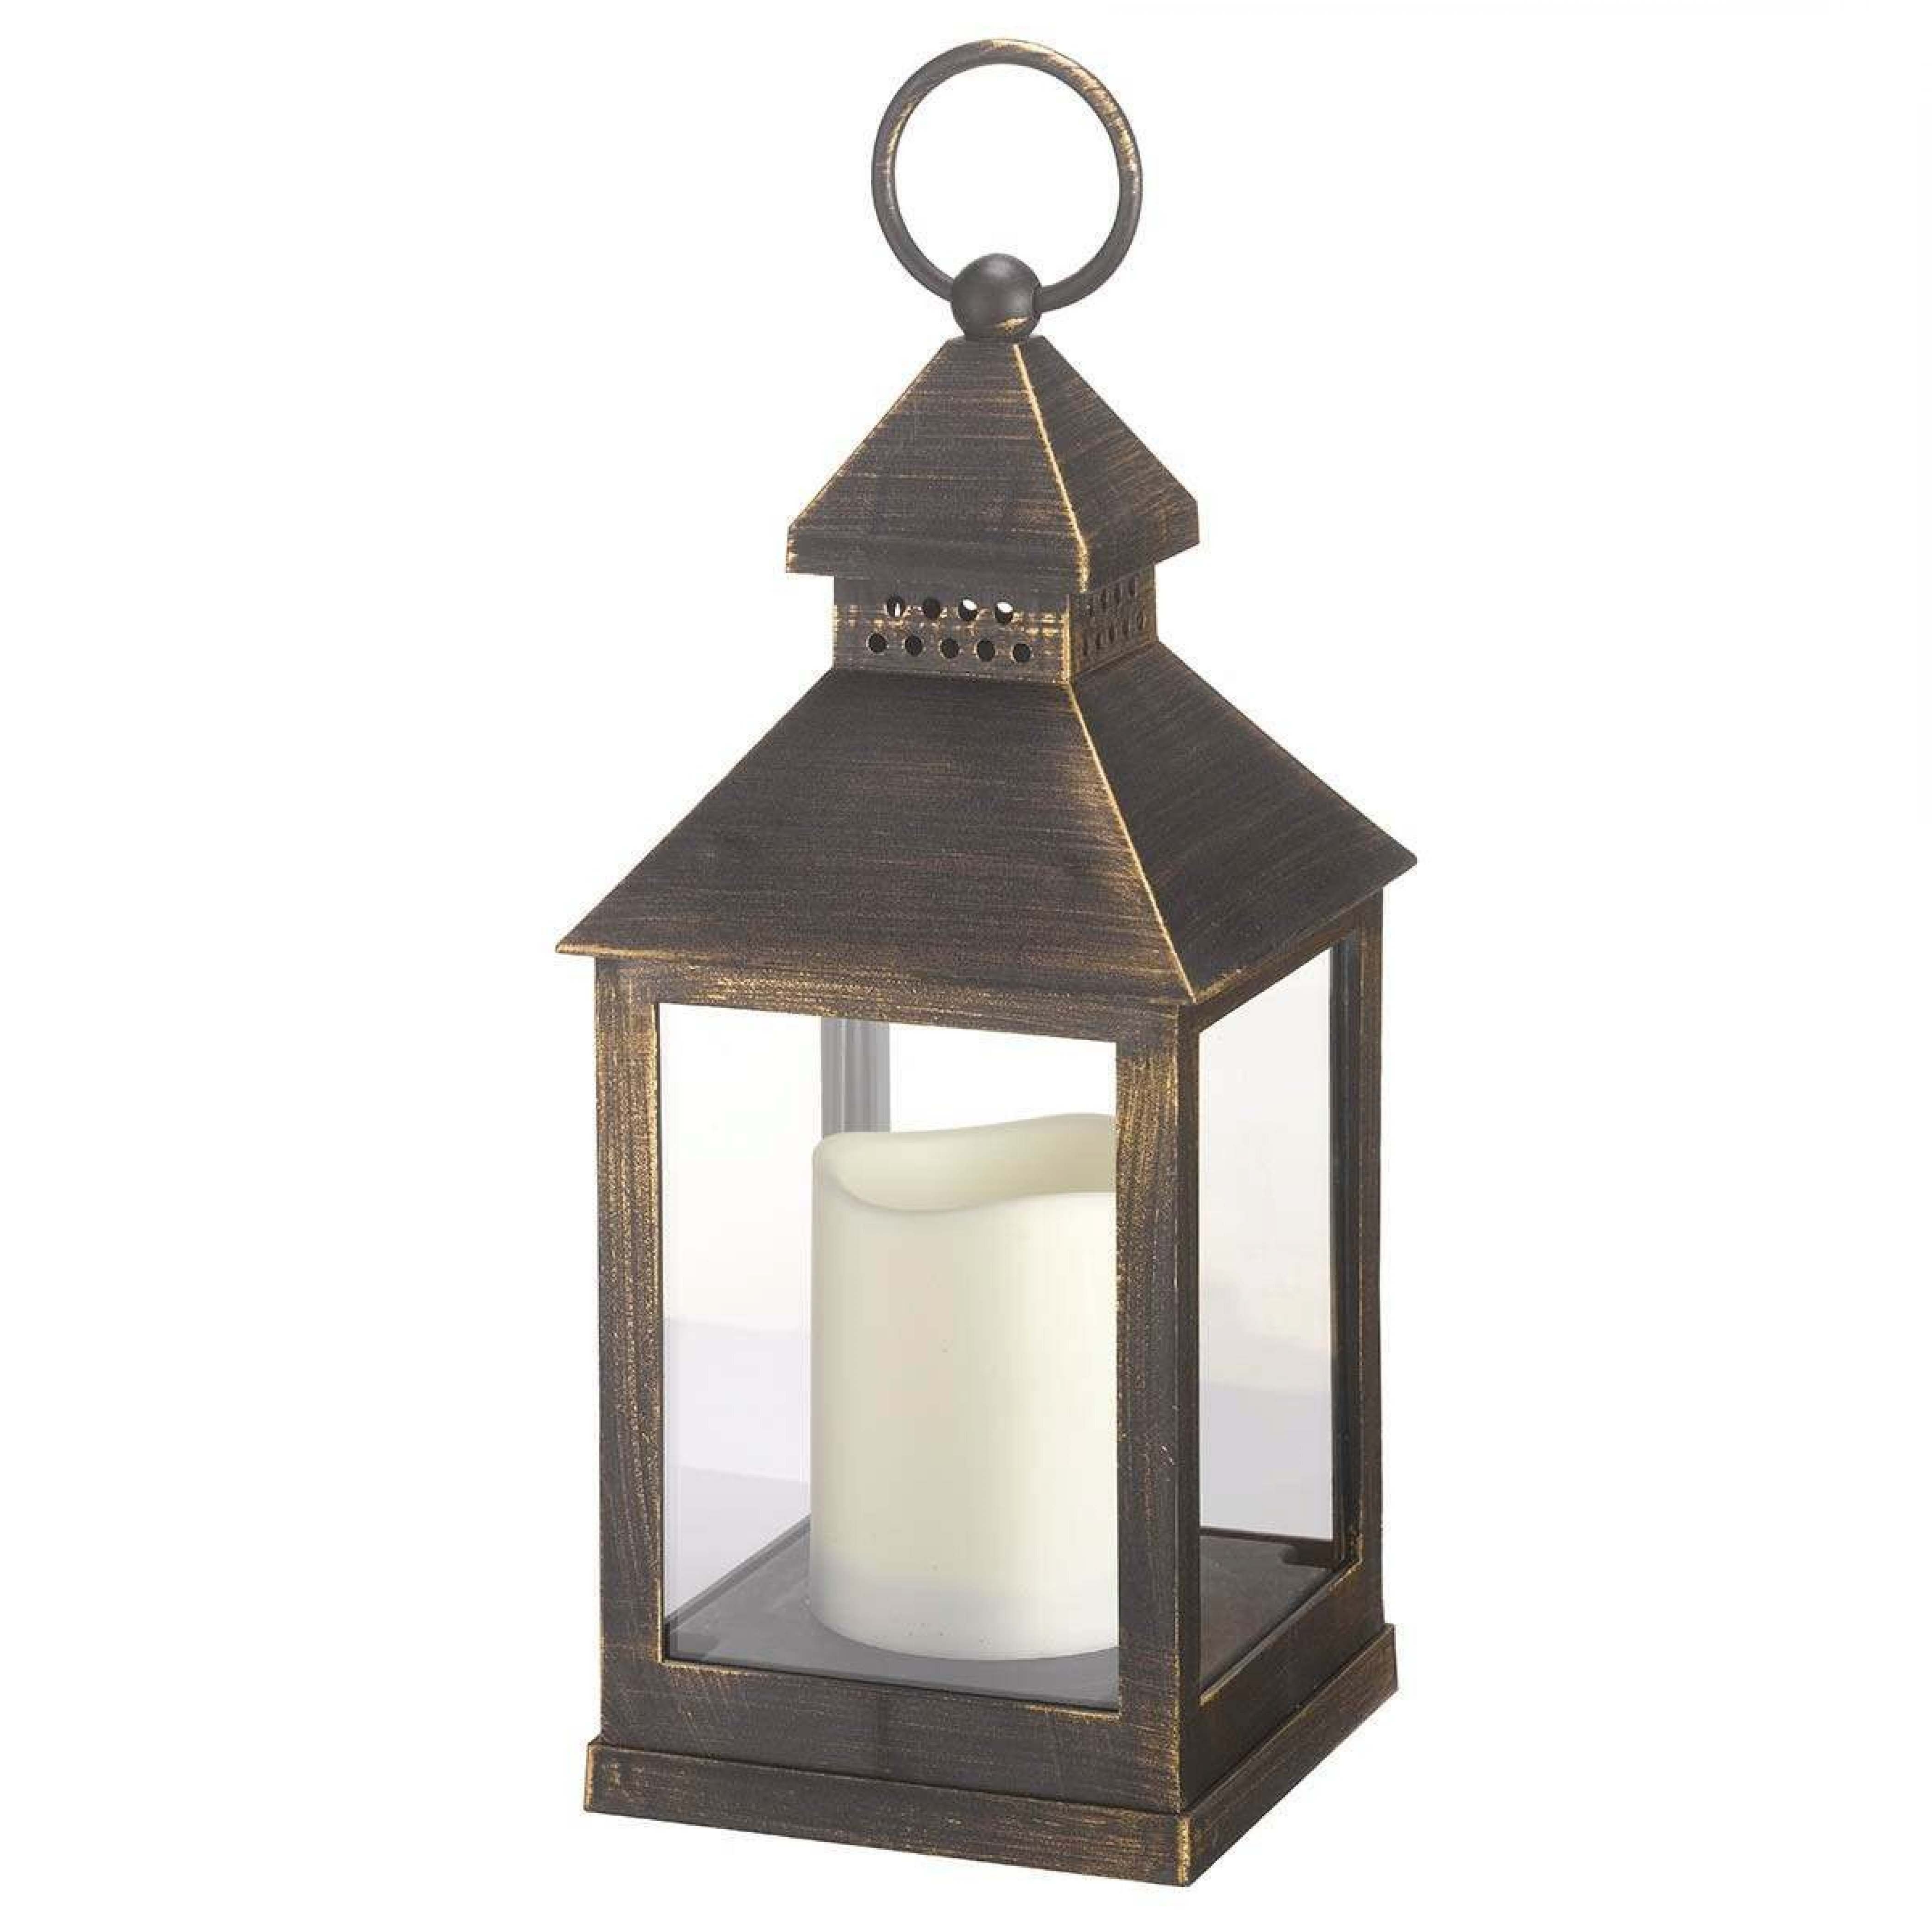 Outdoor Lanterns With Flameless Candles Throughout Well Known Outdoor Battery Kentish Candle Lantern, 23cm, 2 Pack (View 13 of 20)